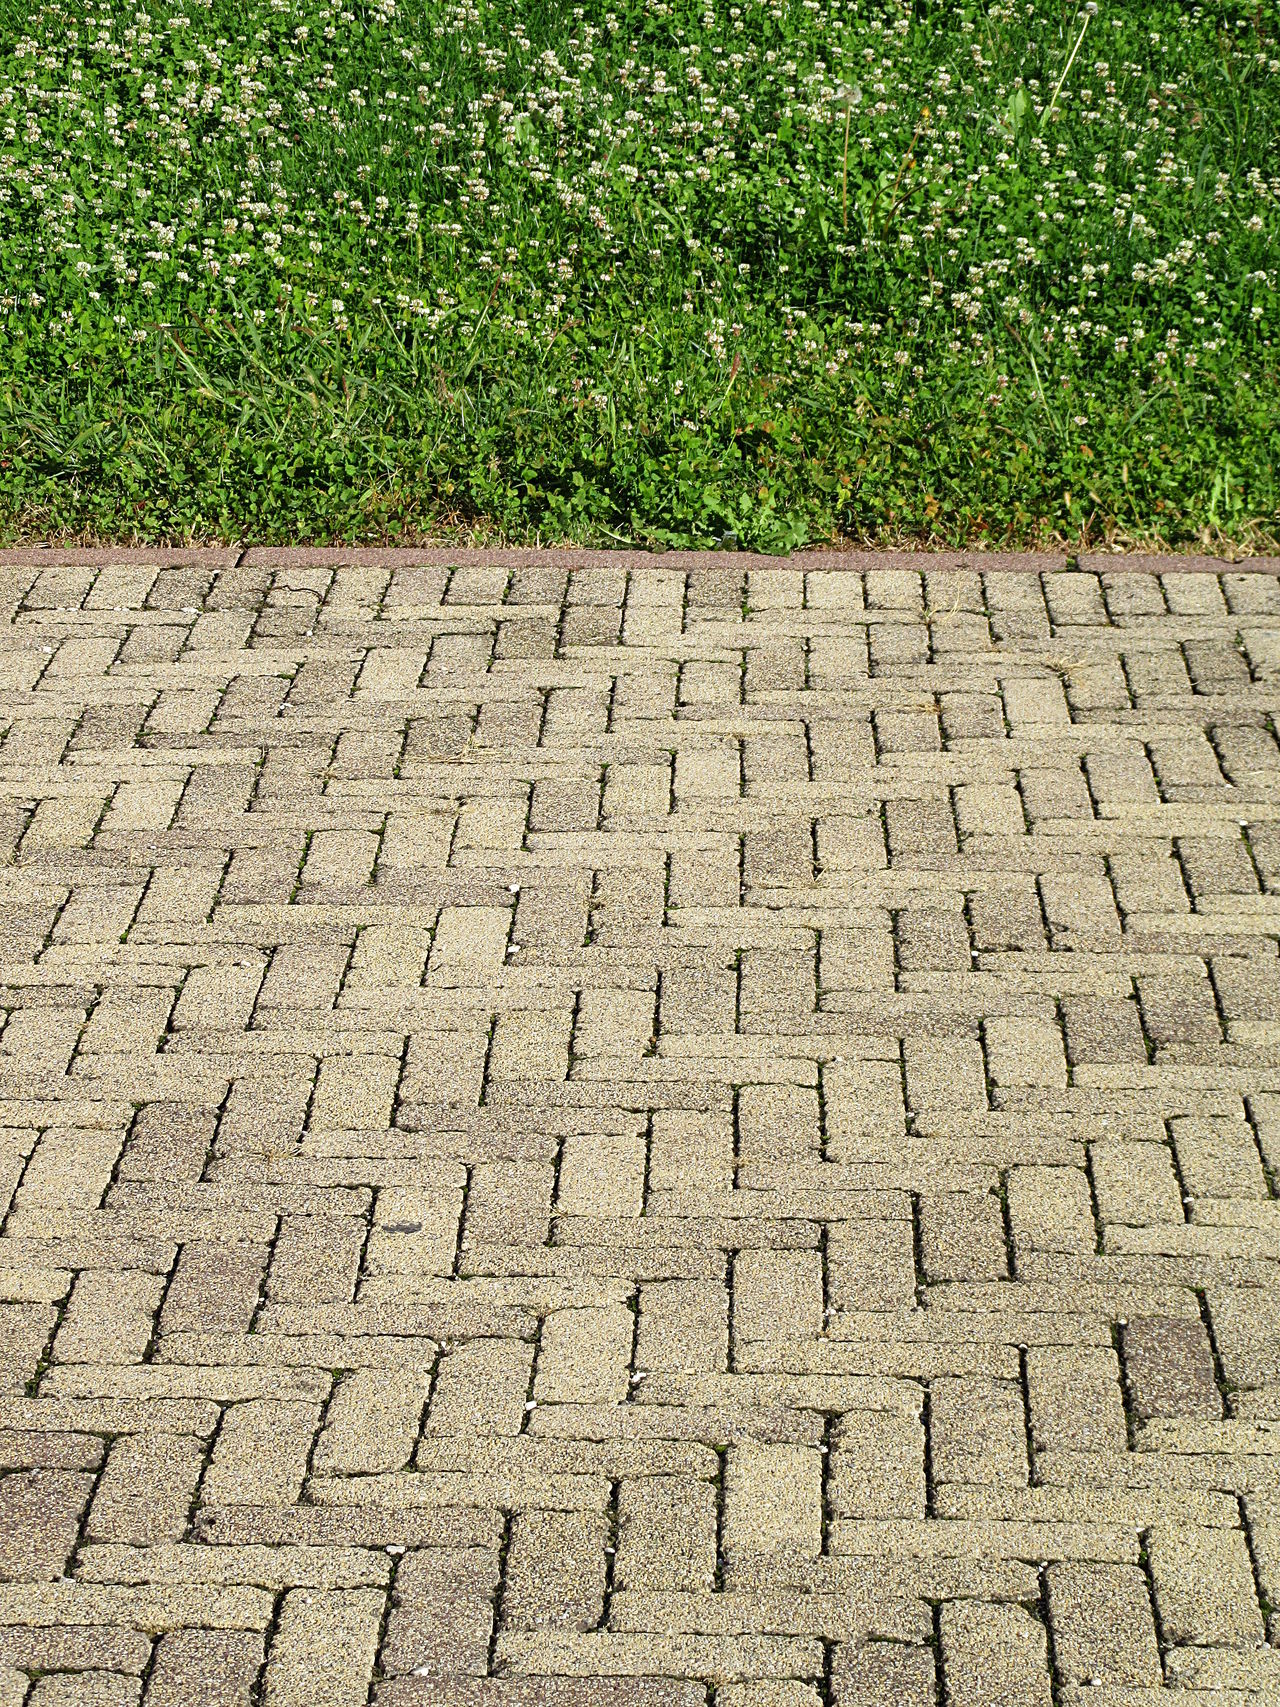 Concrete tiles pavement with green grass background ArchiTexture Backgrounds Close-up Concrete Floor Copy Space Day Footpath Grass Green Color Nature No People Outdoors Pathway Pattern Pavement Textured  Textures And Surfaces Tiles